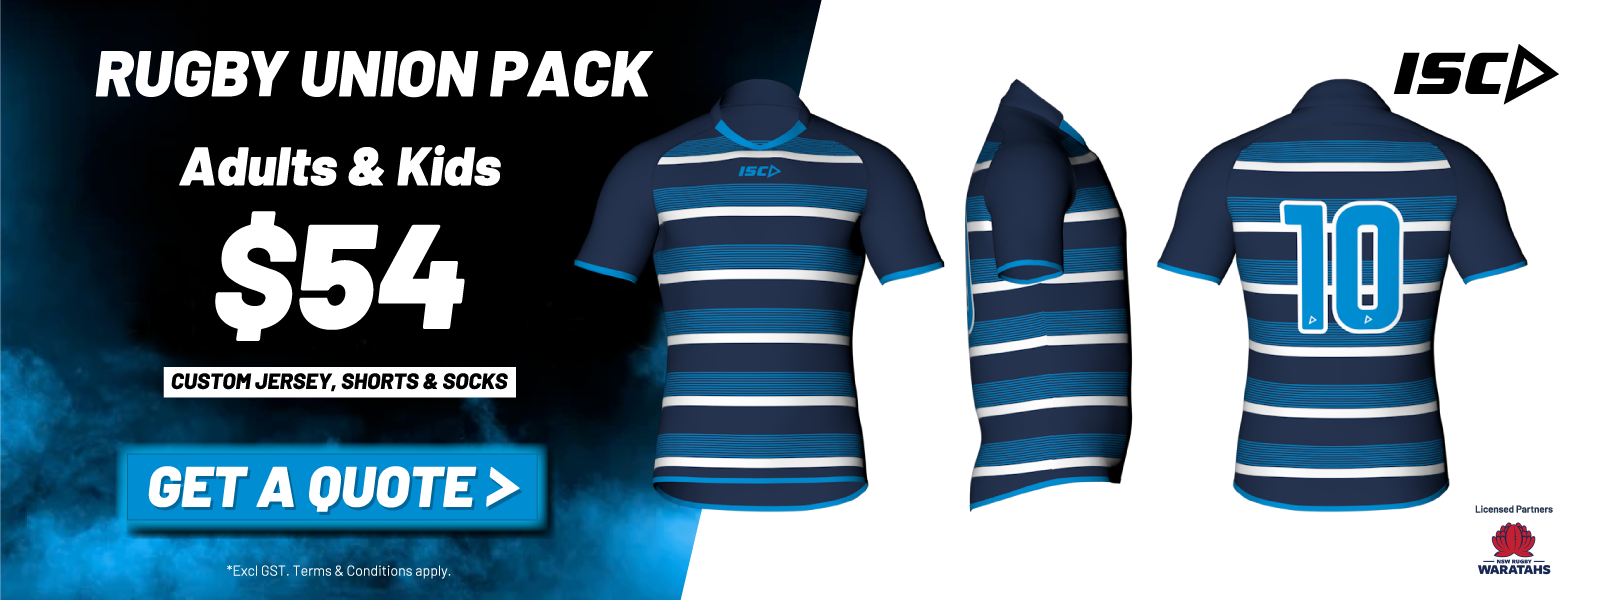 isc sport custom rugby union jersey, shorts & socks special price pack